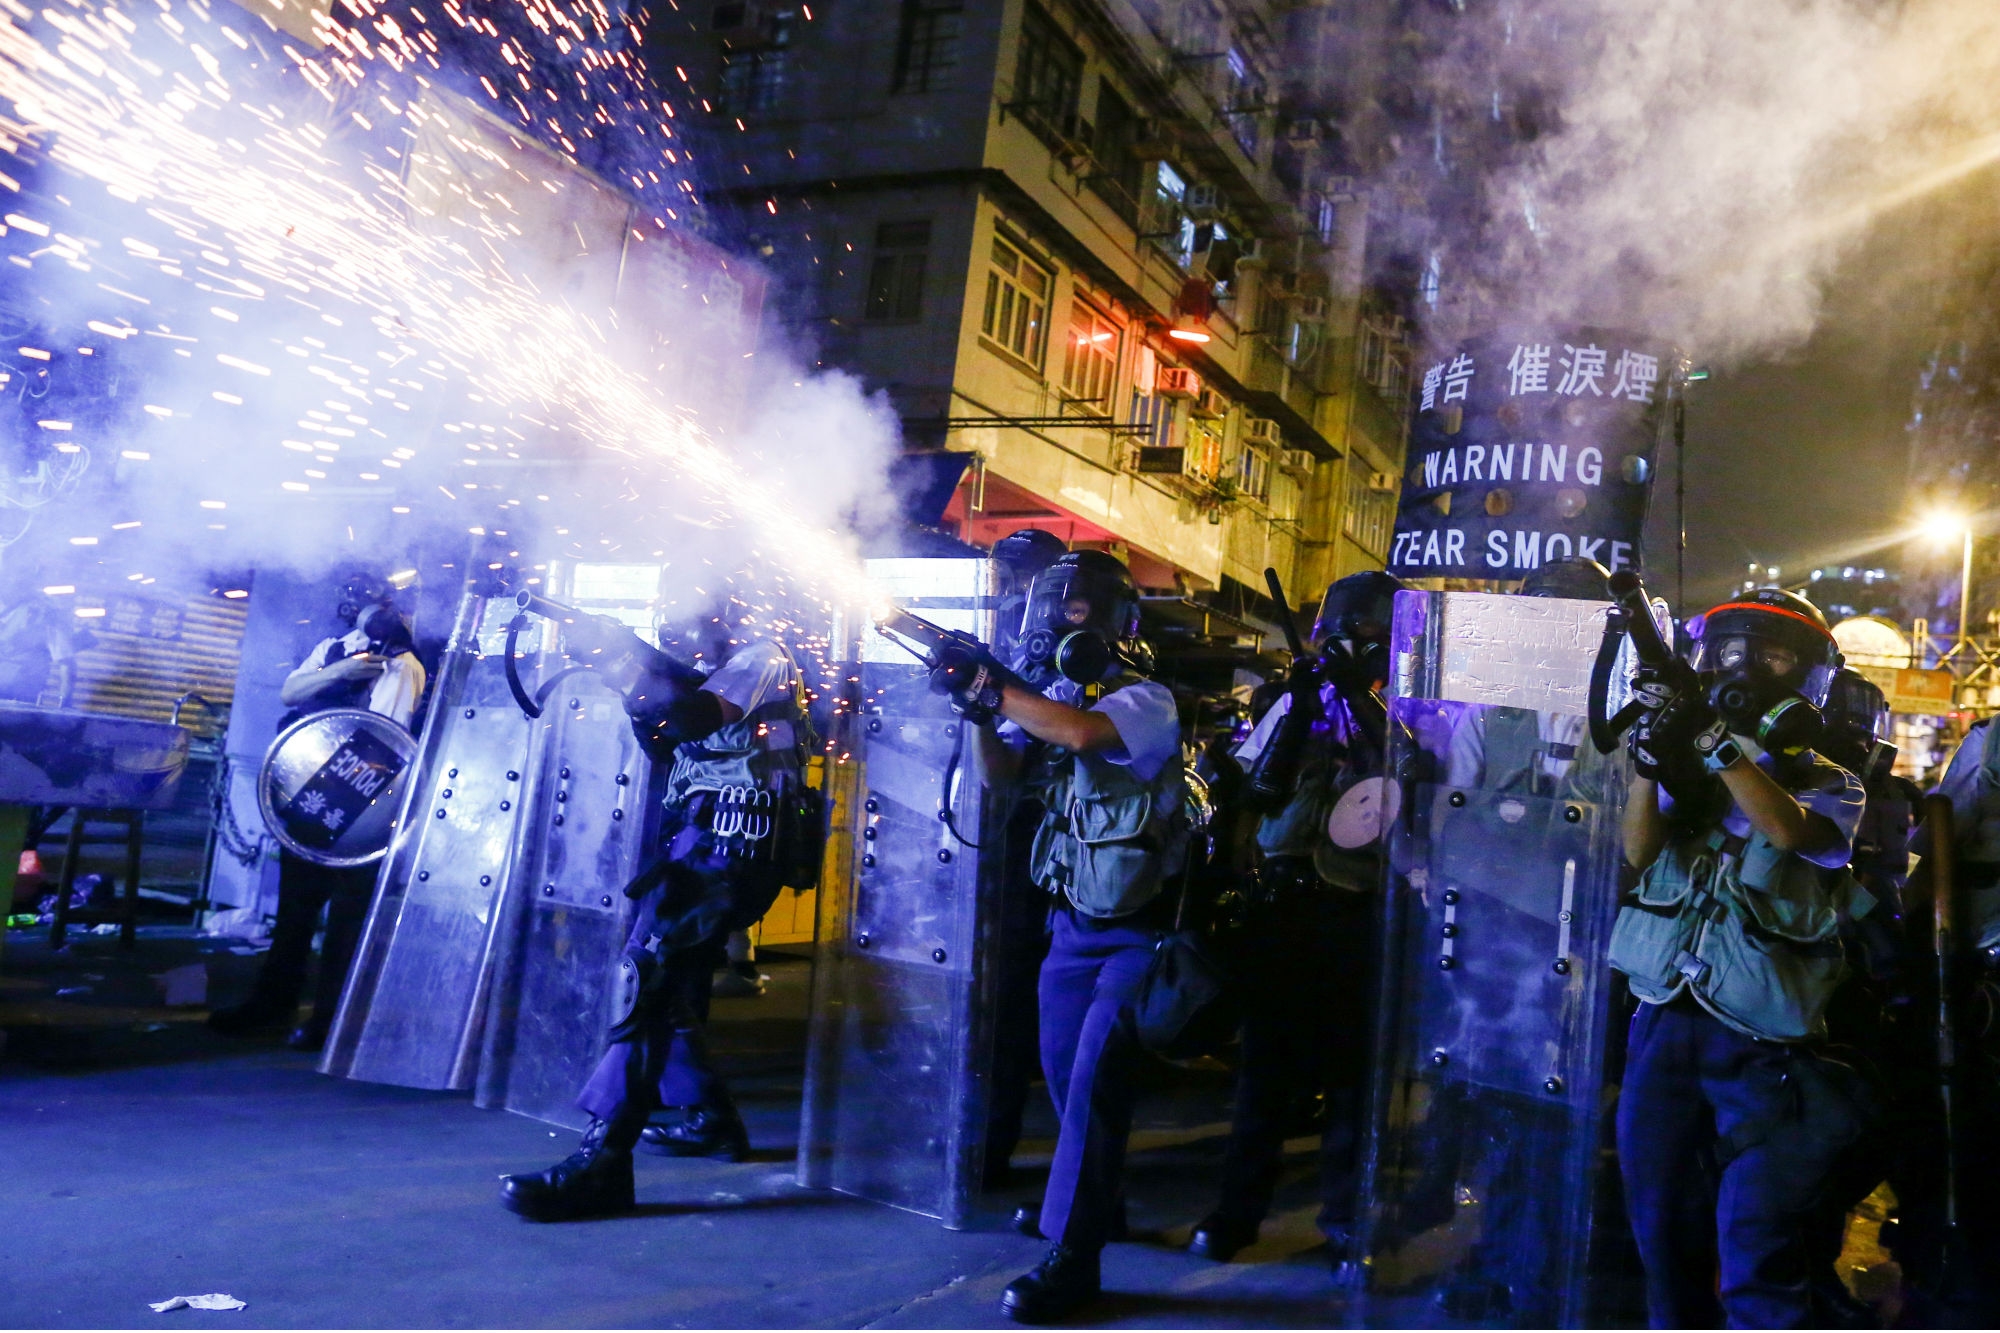 Police fire tear gas at anti-extradition bill protesters during clashes in Sham Shui Po in Hong Kong, China, on August 14, 2019. REUTERS/Thomas Peter